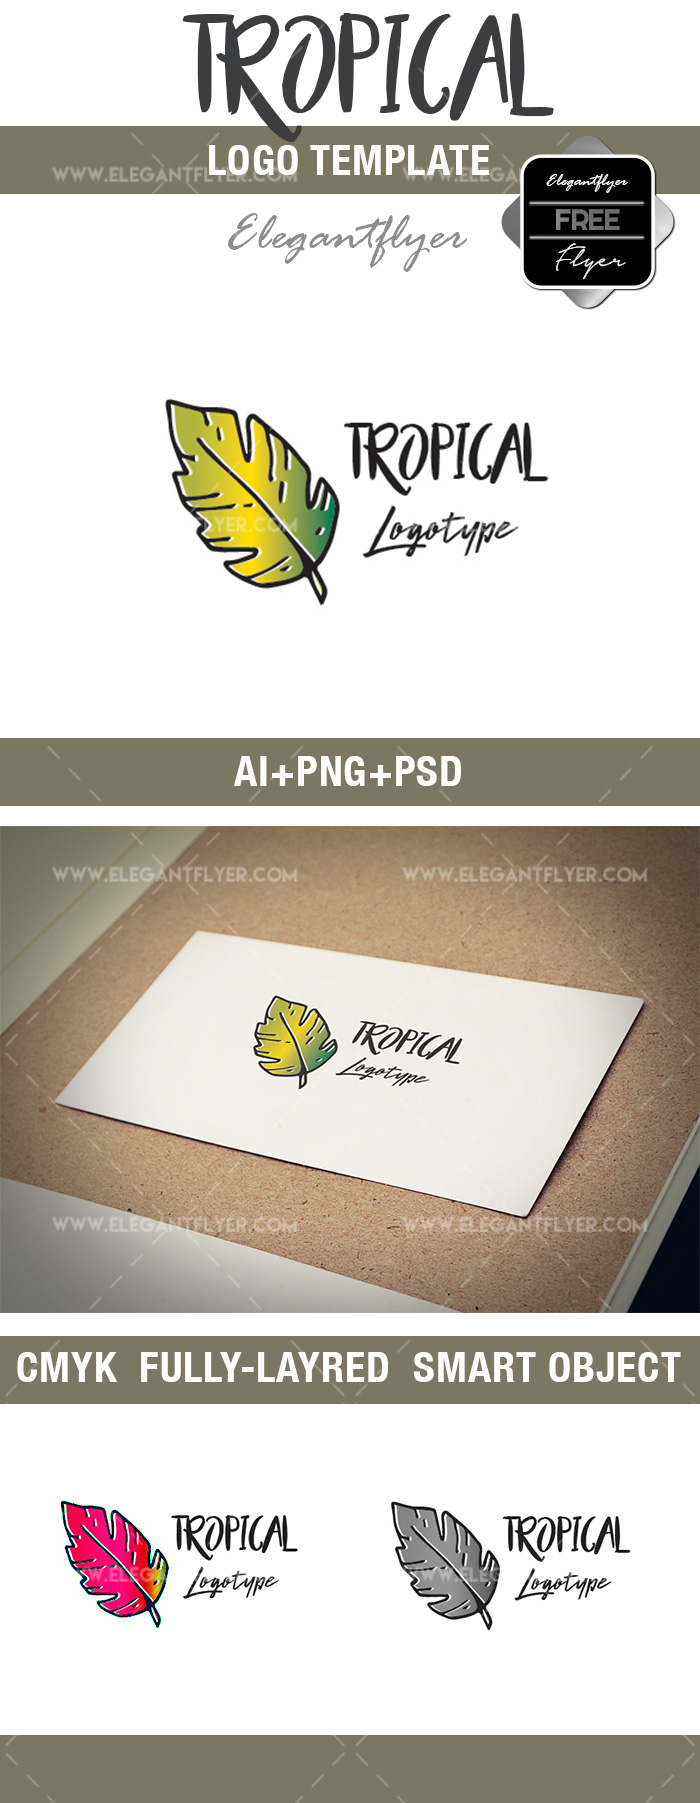 Tropical – Free Logo Template